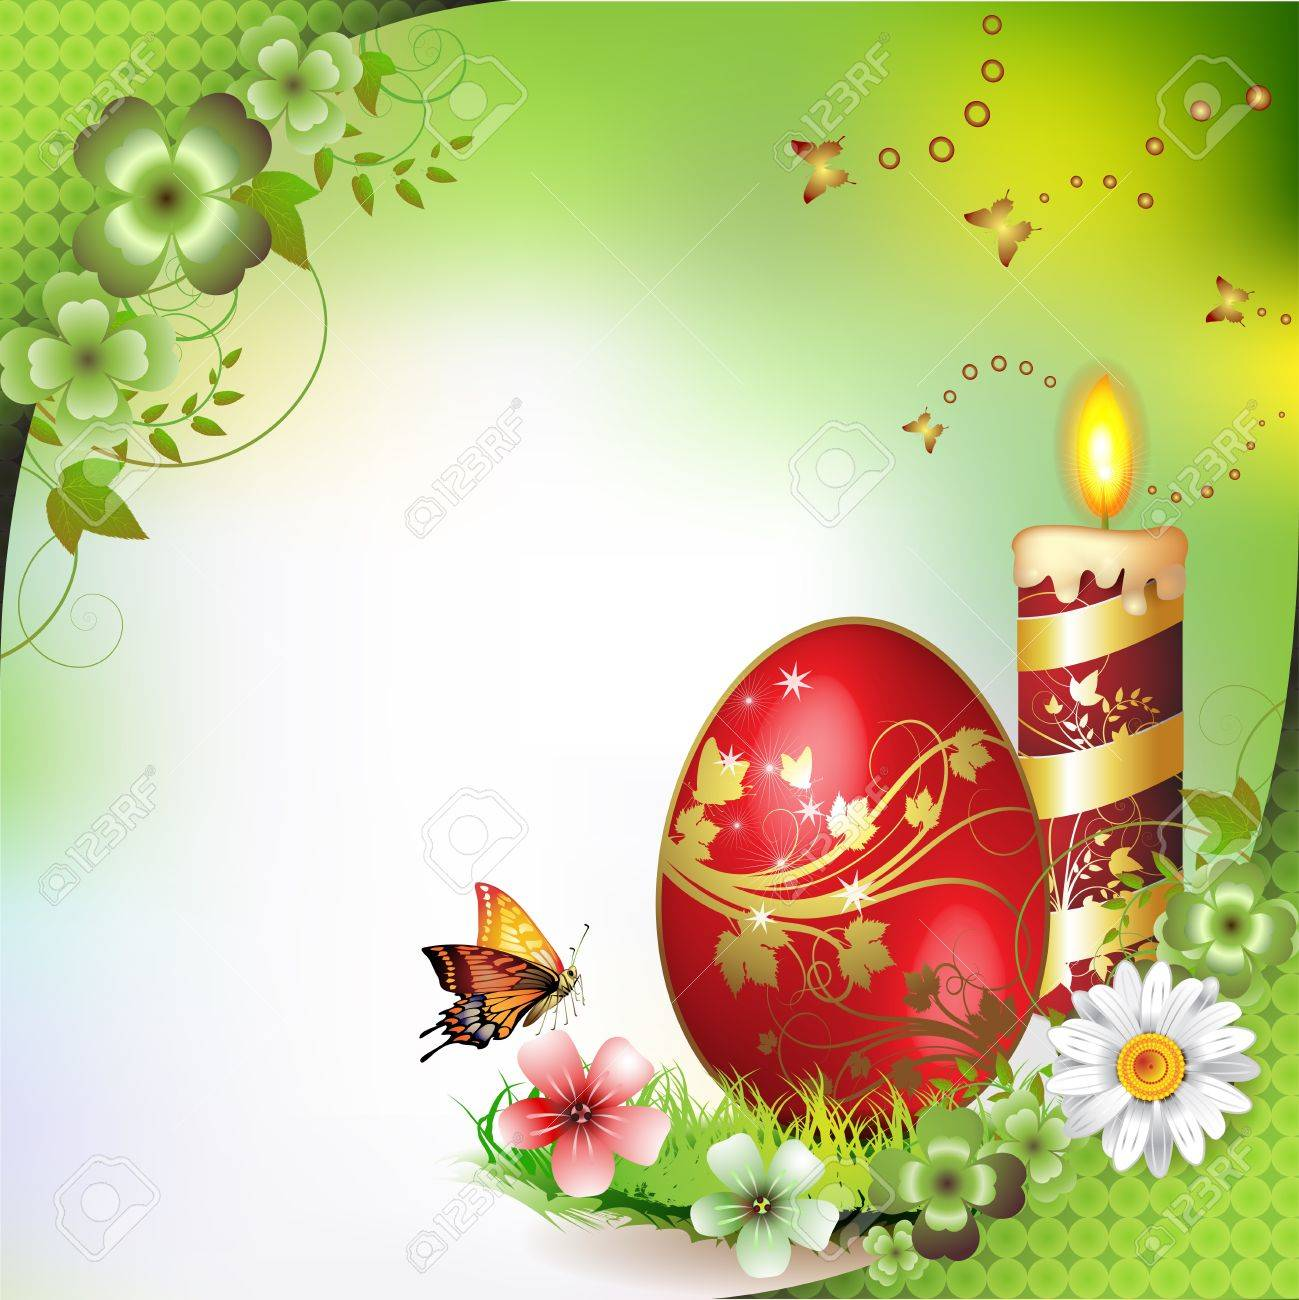 Easter card with butterflies, candle and decorated egg on grass Stock Vector - 13007770